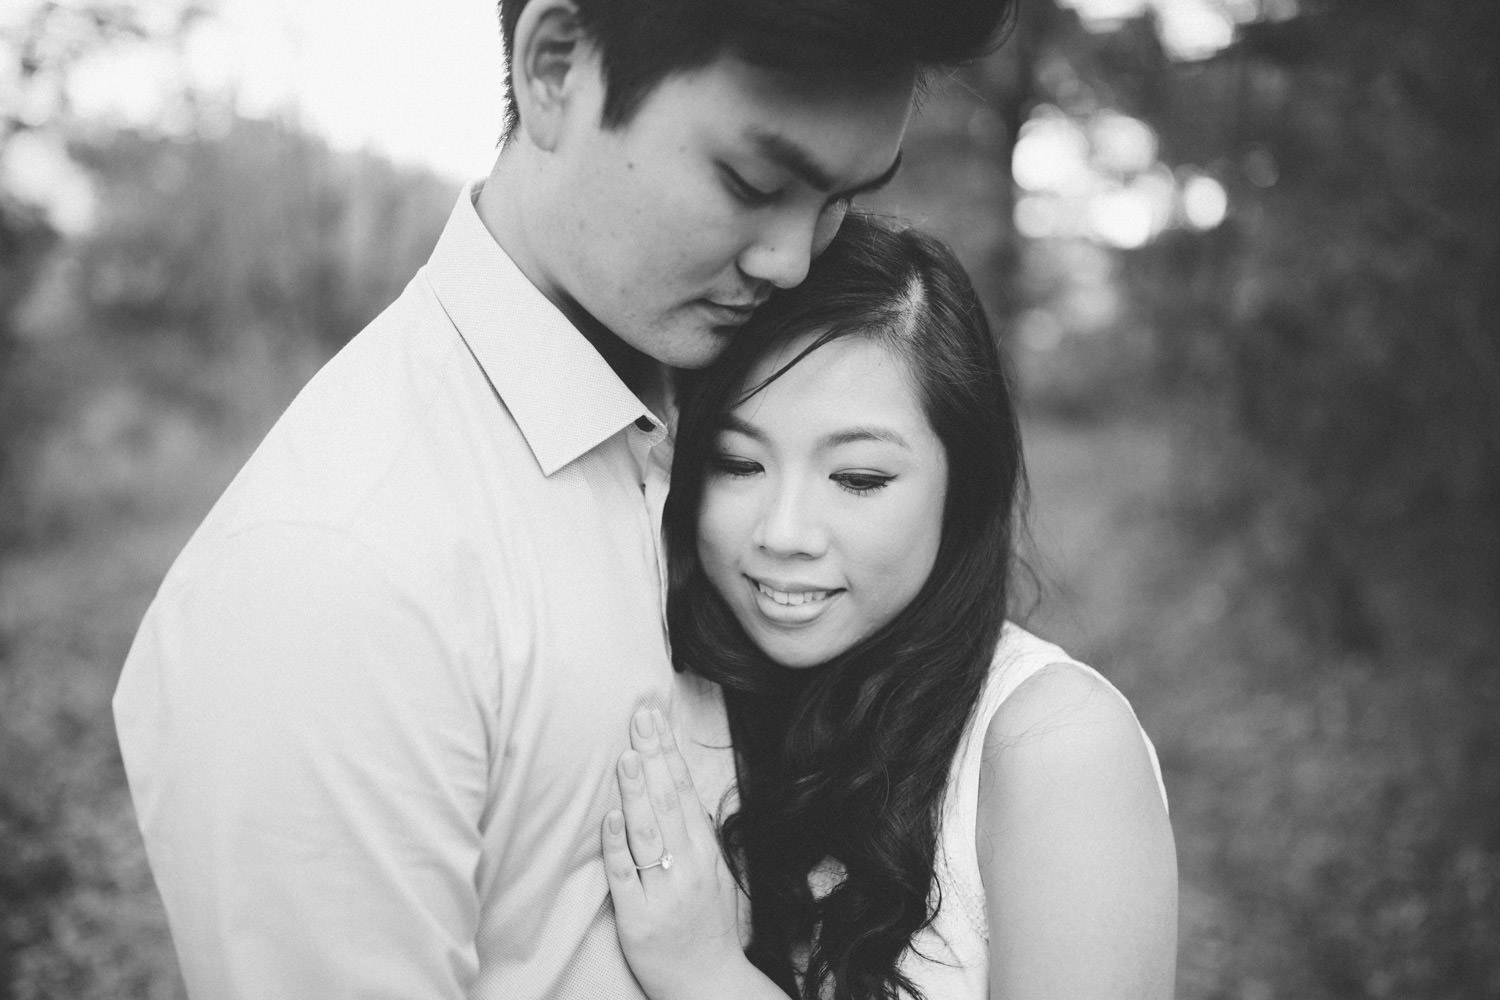 Candice & Tim - Engagement-14.jpg